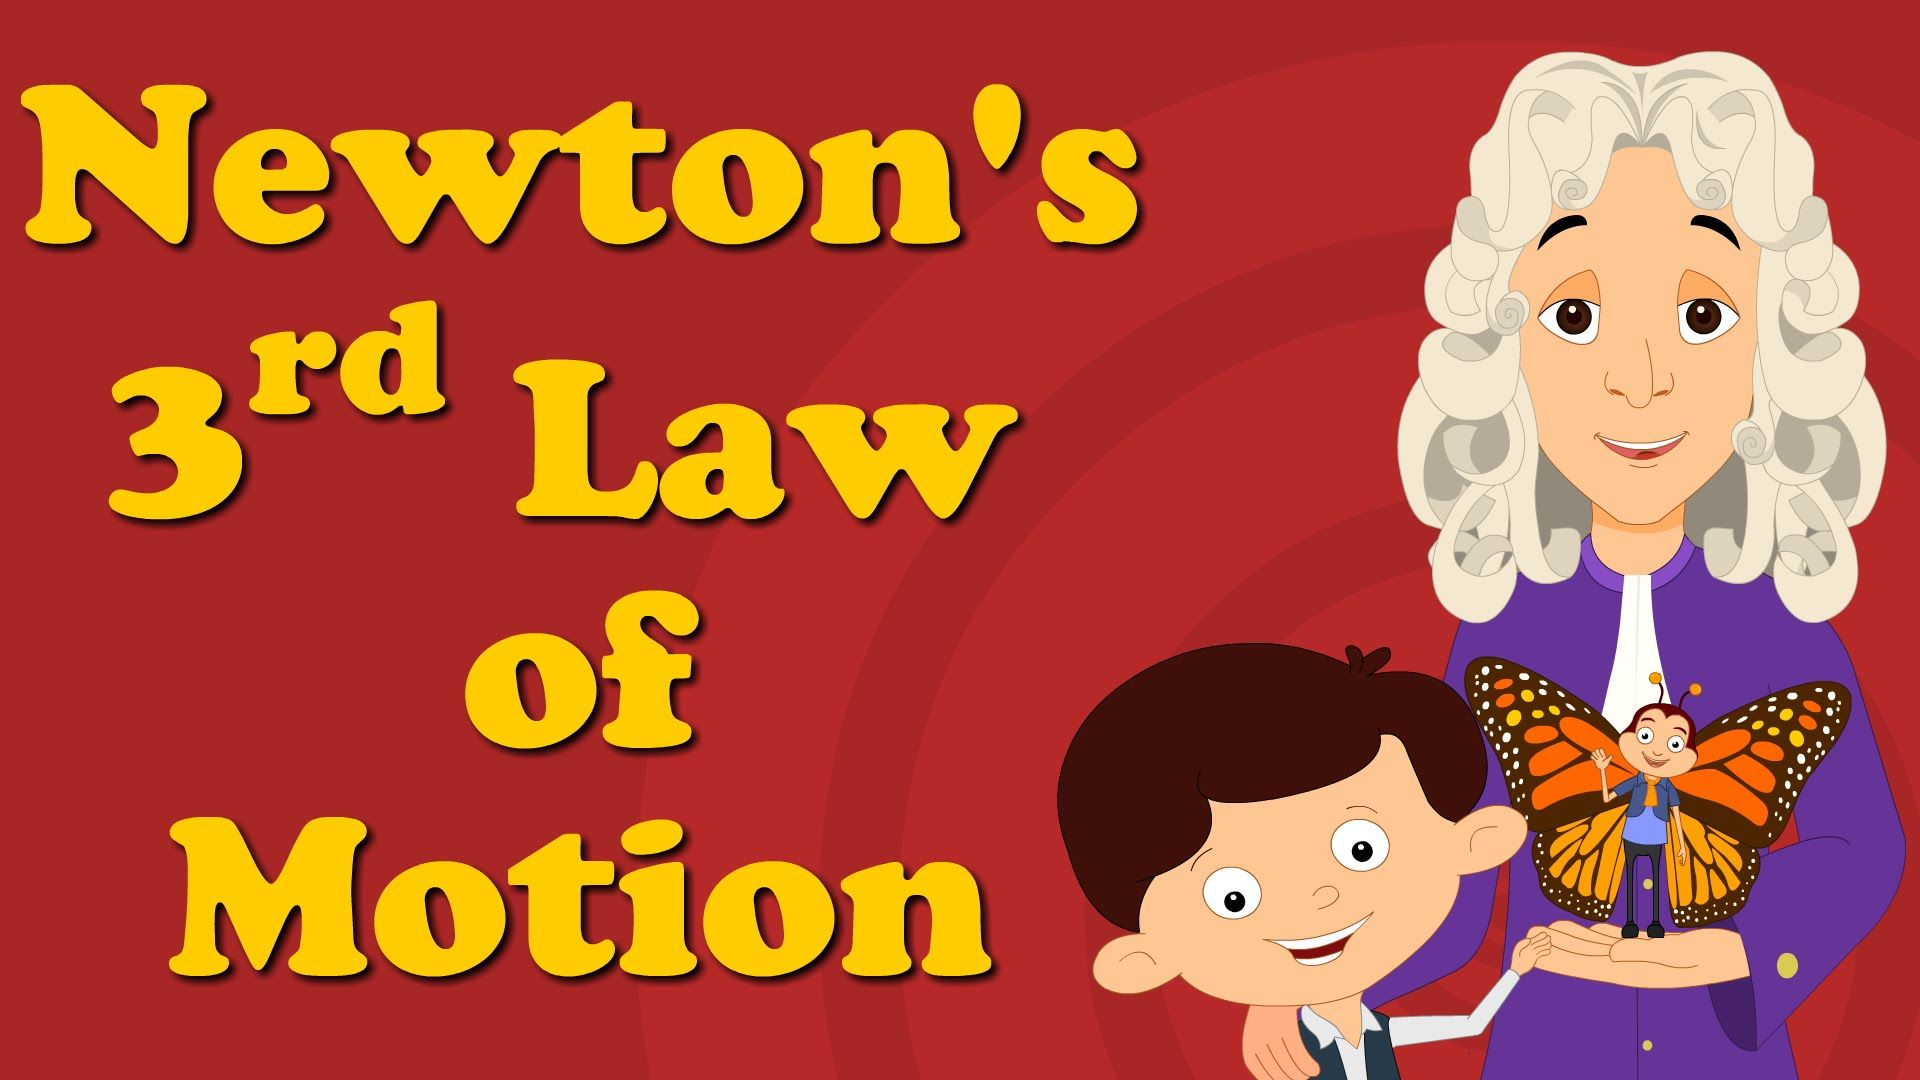 20 Sci Es 10 1 Action Reaction Ideas Newtons Third Law Newtons Laws Newtons Third Law Of Motion